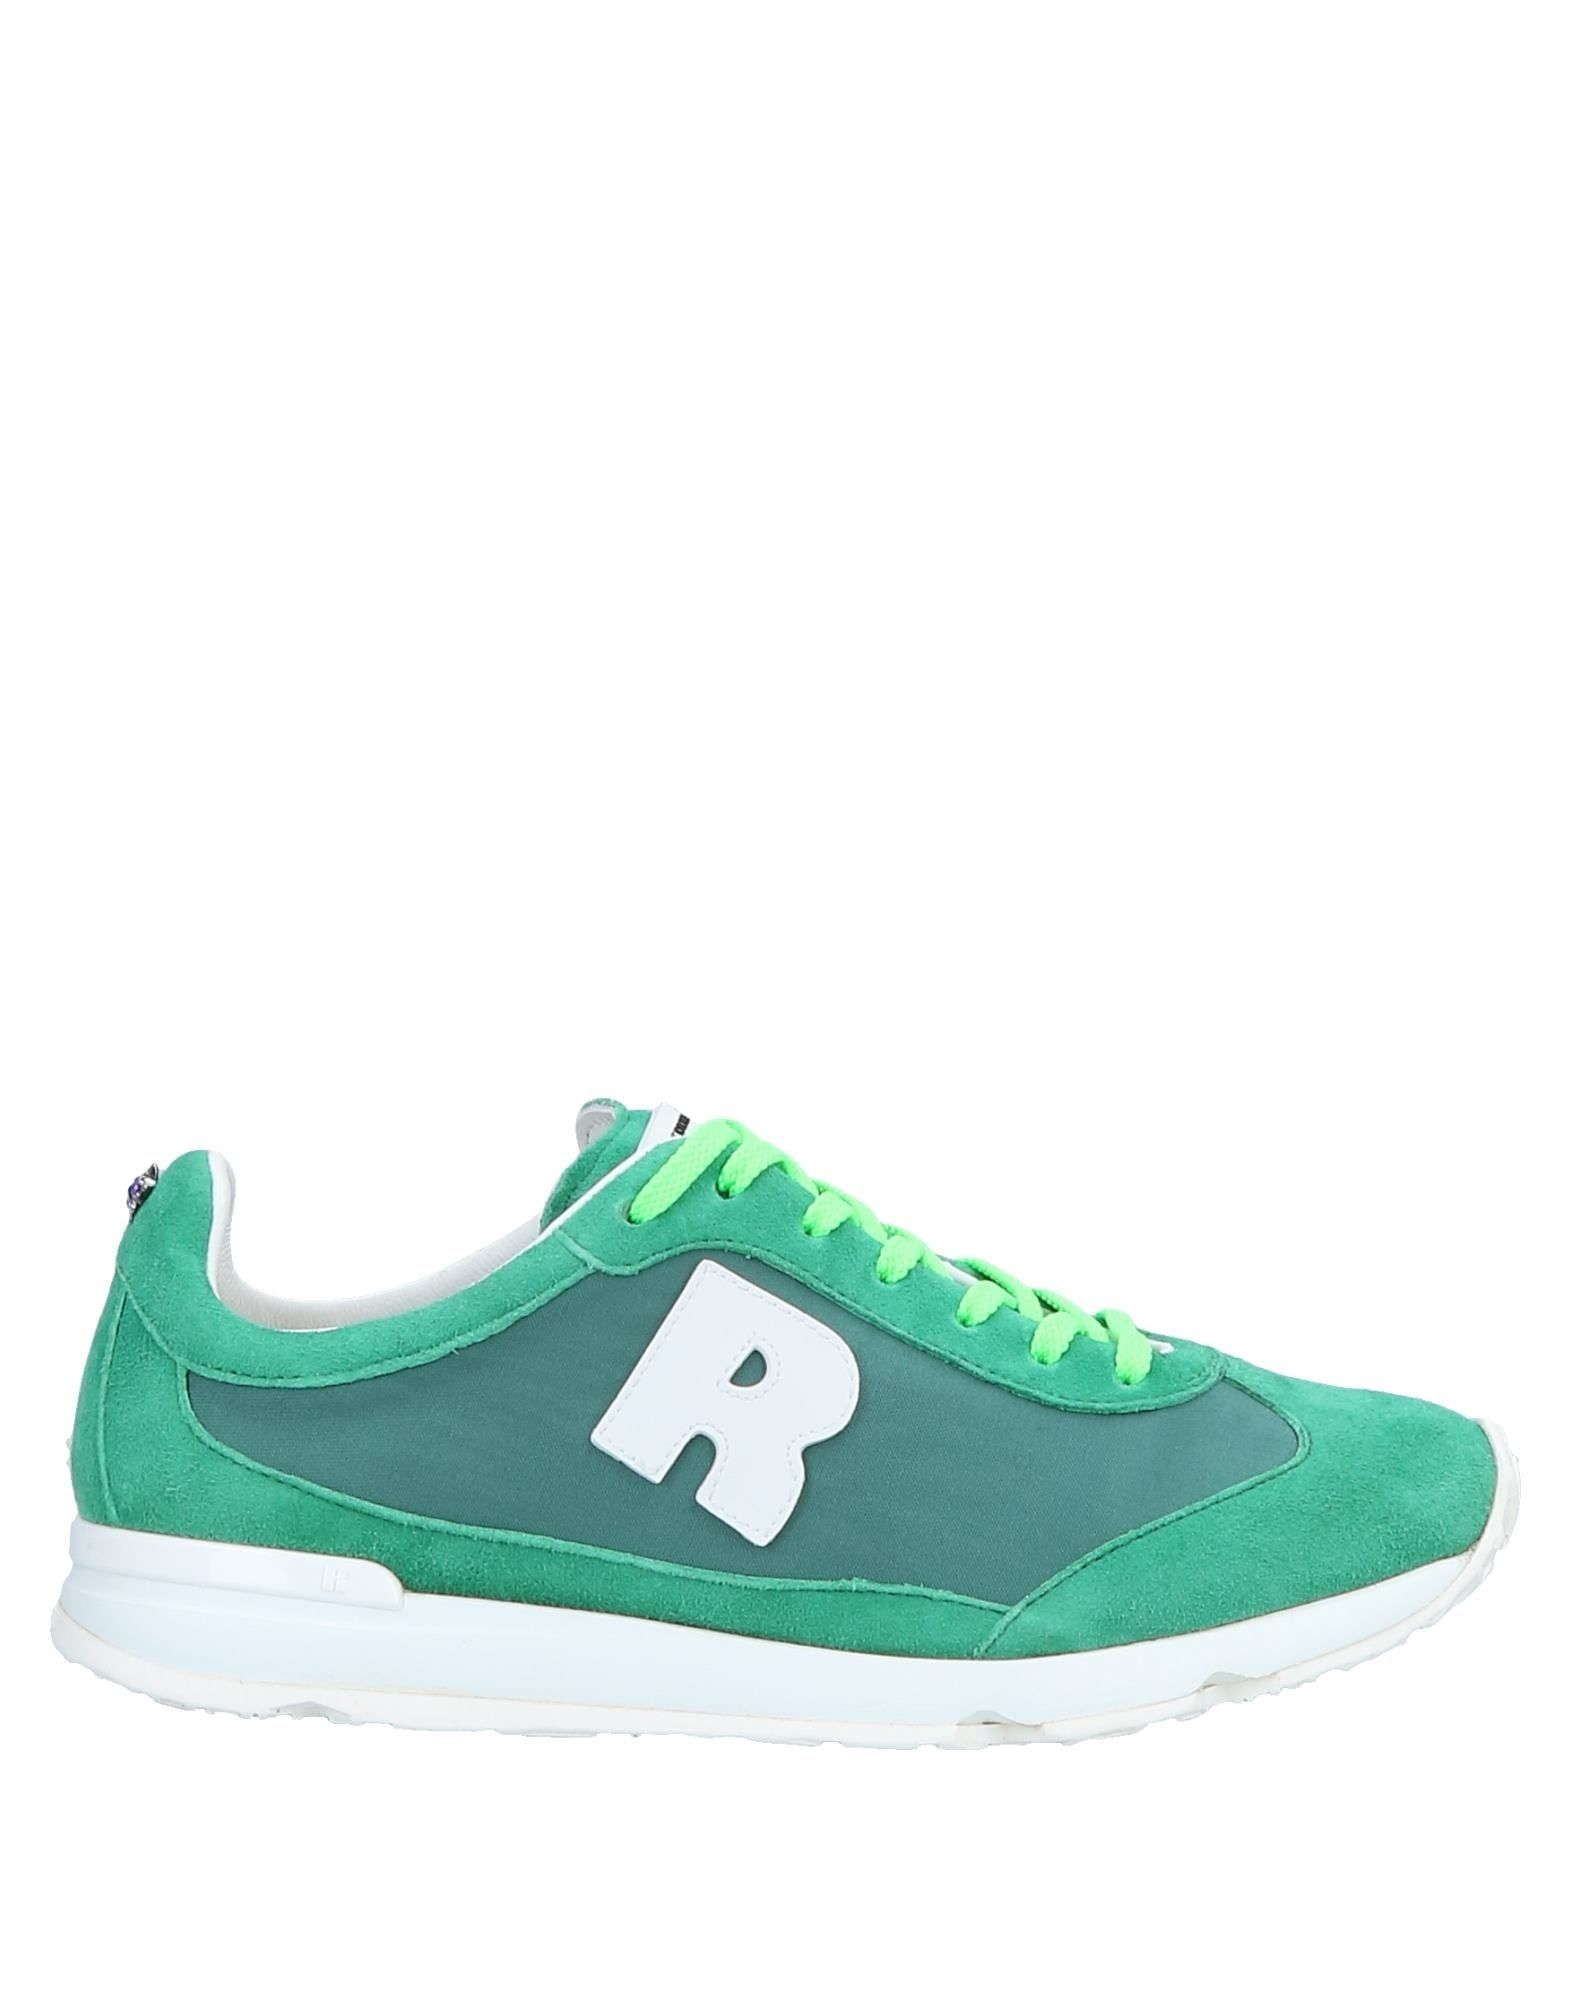 Ruco Line Line Sneakers - Women Ruco Line Line Sneakers online on  Australia - 11559479JI ad8f09